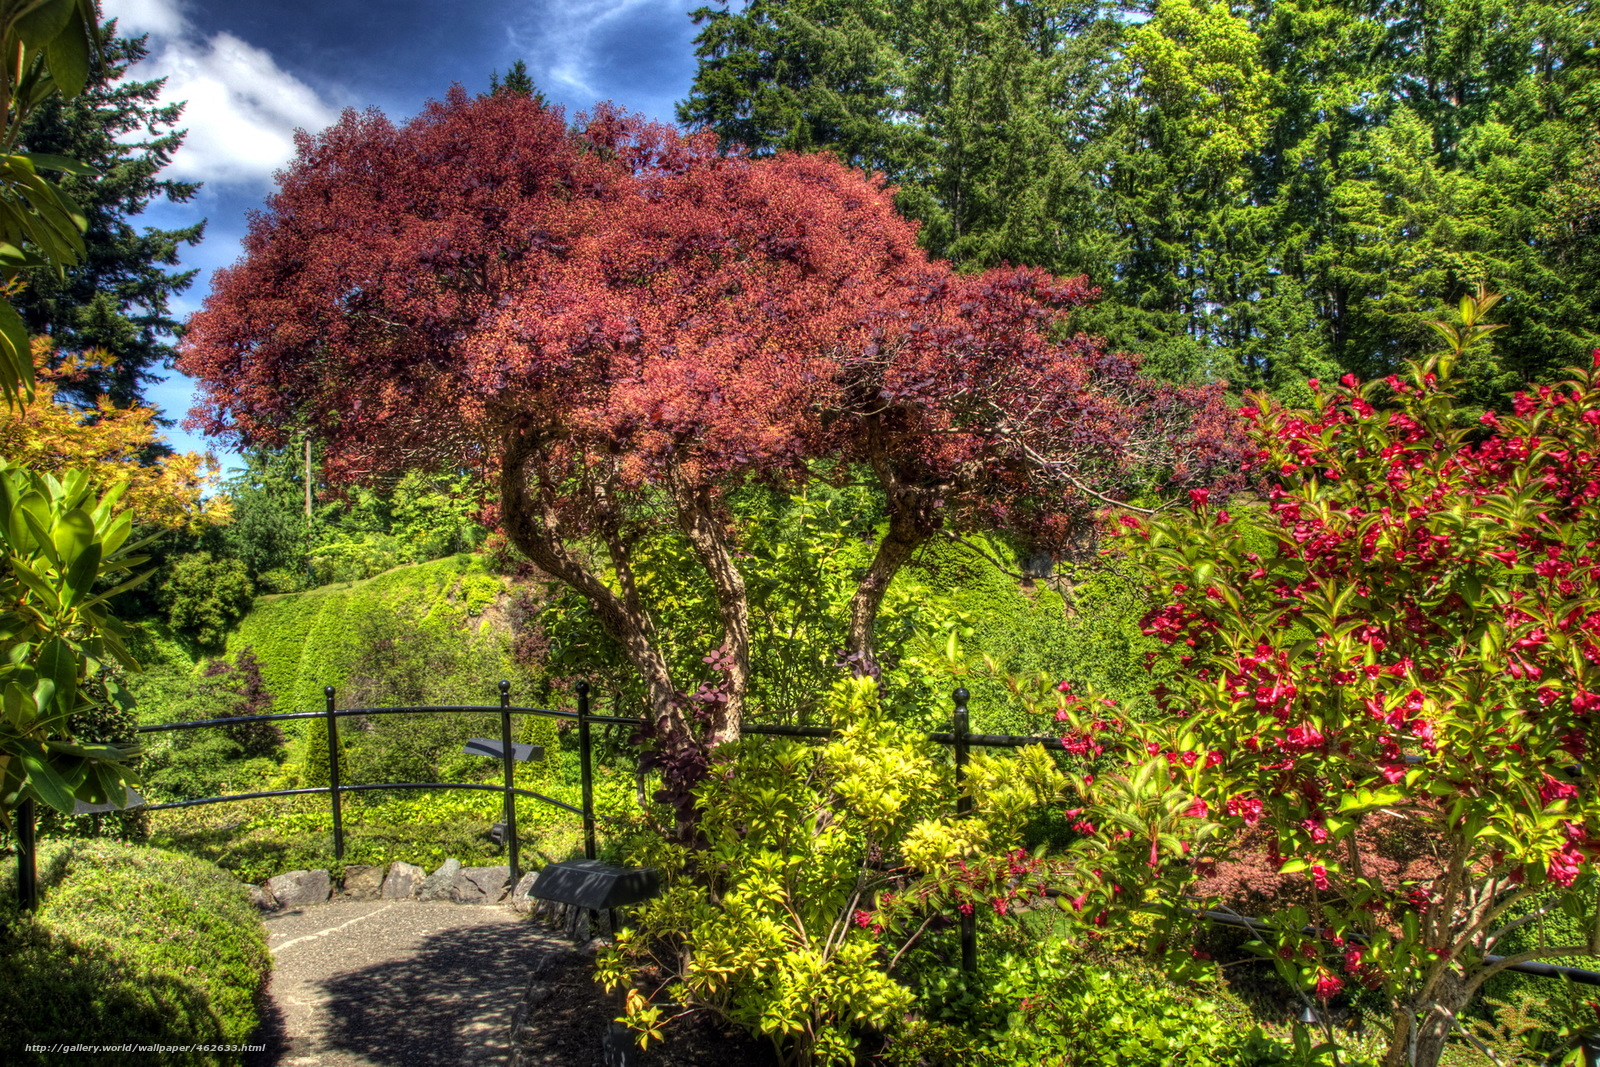 wallpaper Gardens butchart victoria Canada desktop wallpaper 1600x1067